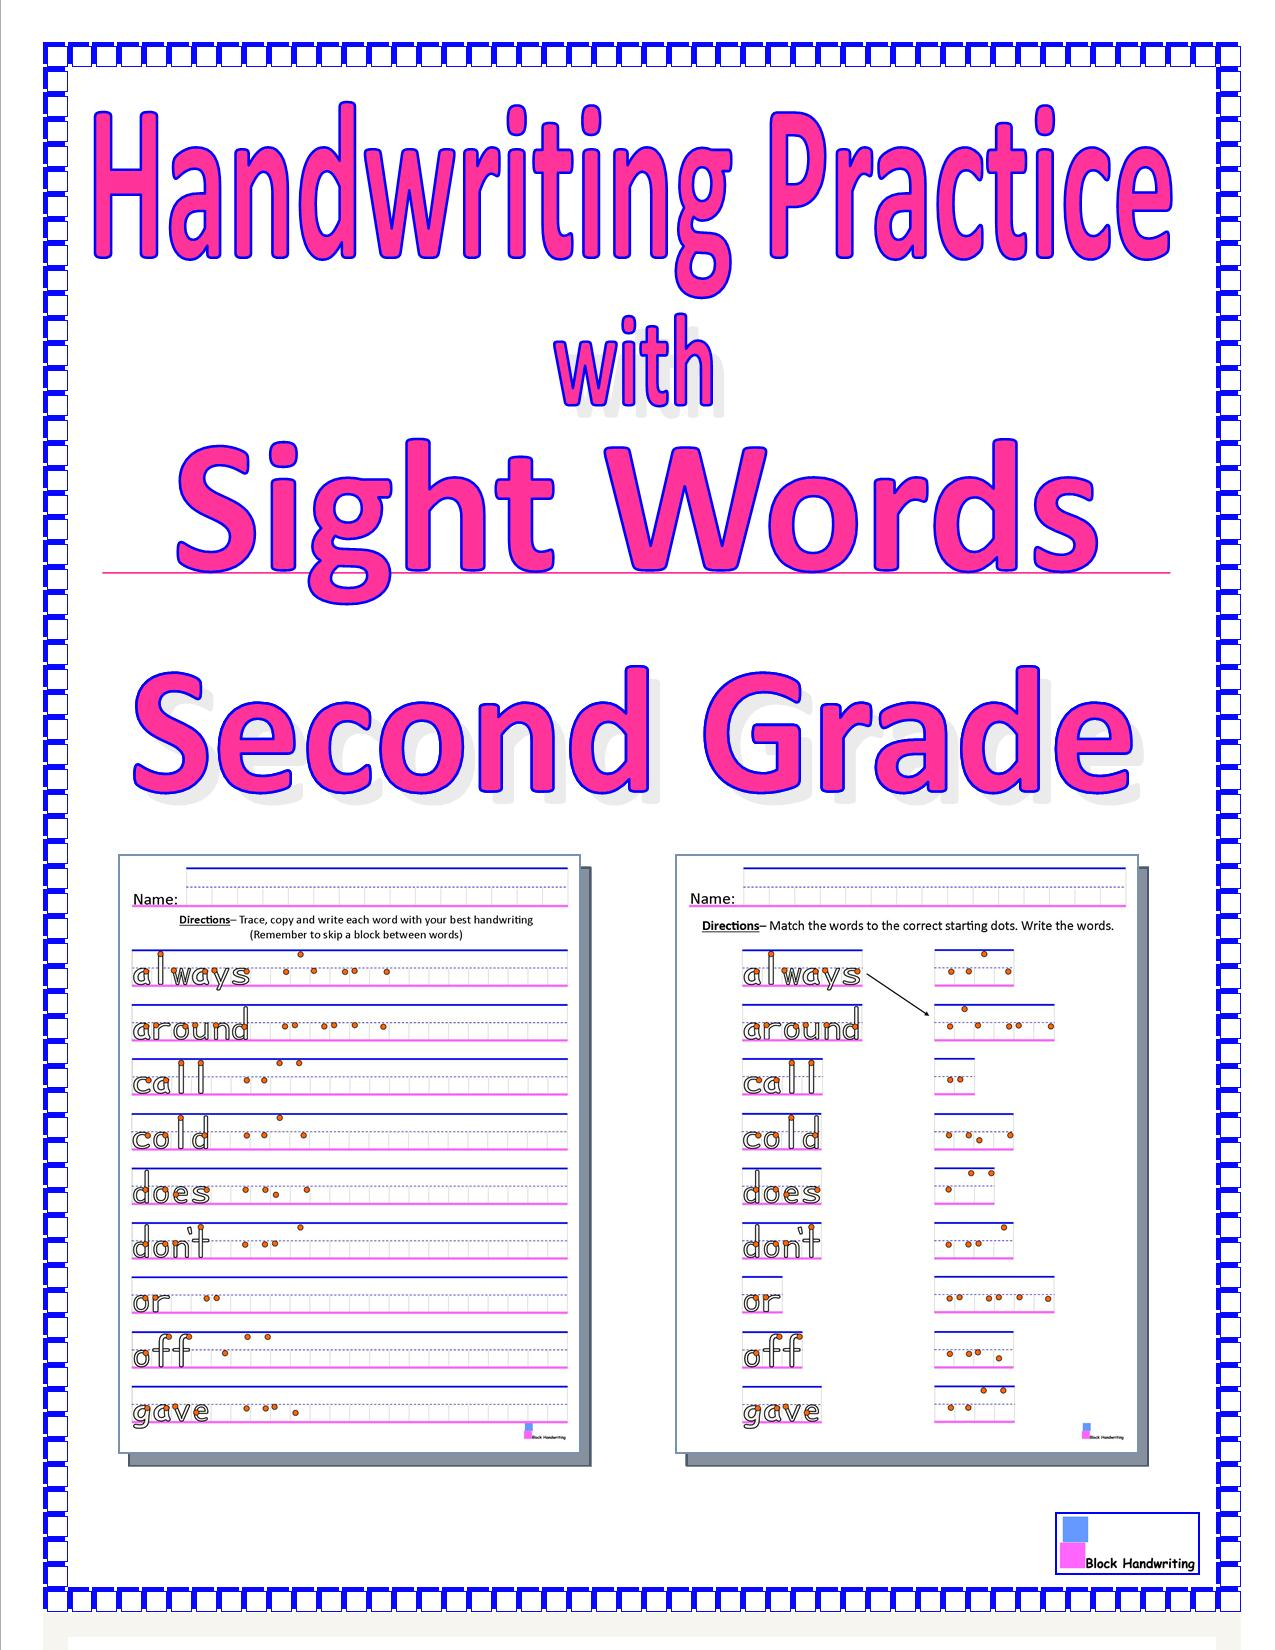 worksheet 2nd Grade Writing Worksheets second grade handwriting worksheets delibertad for delibertad